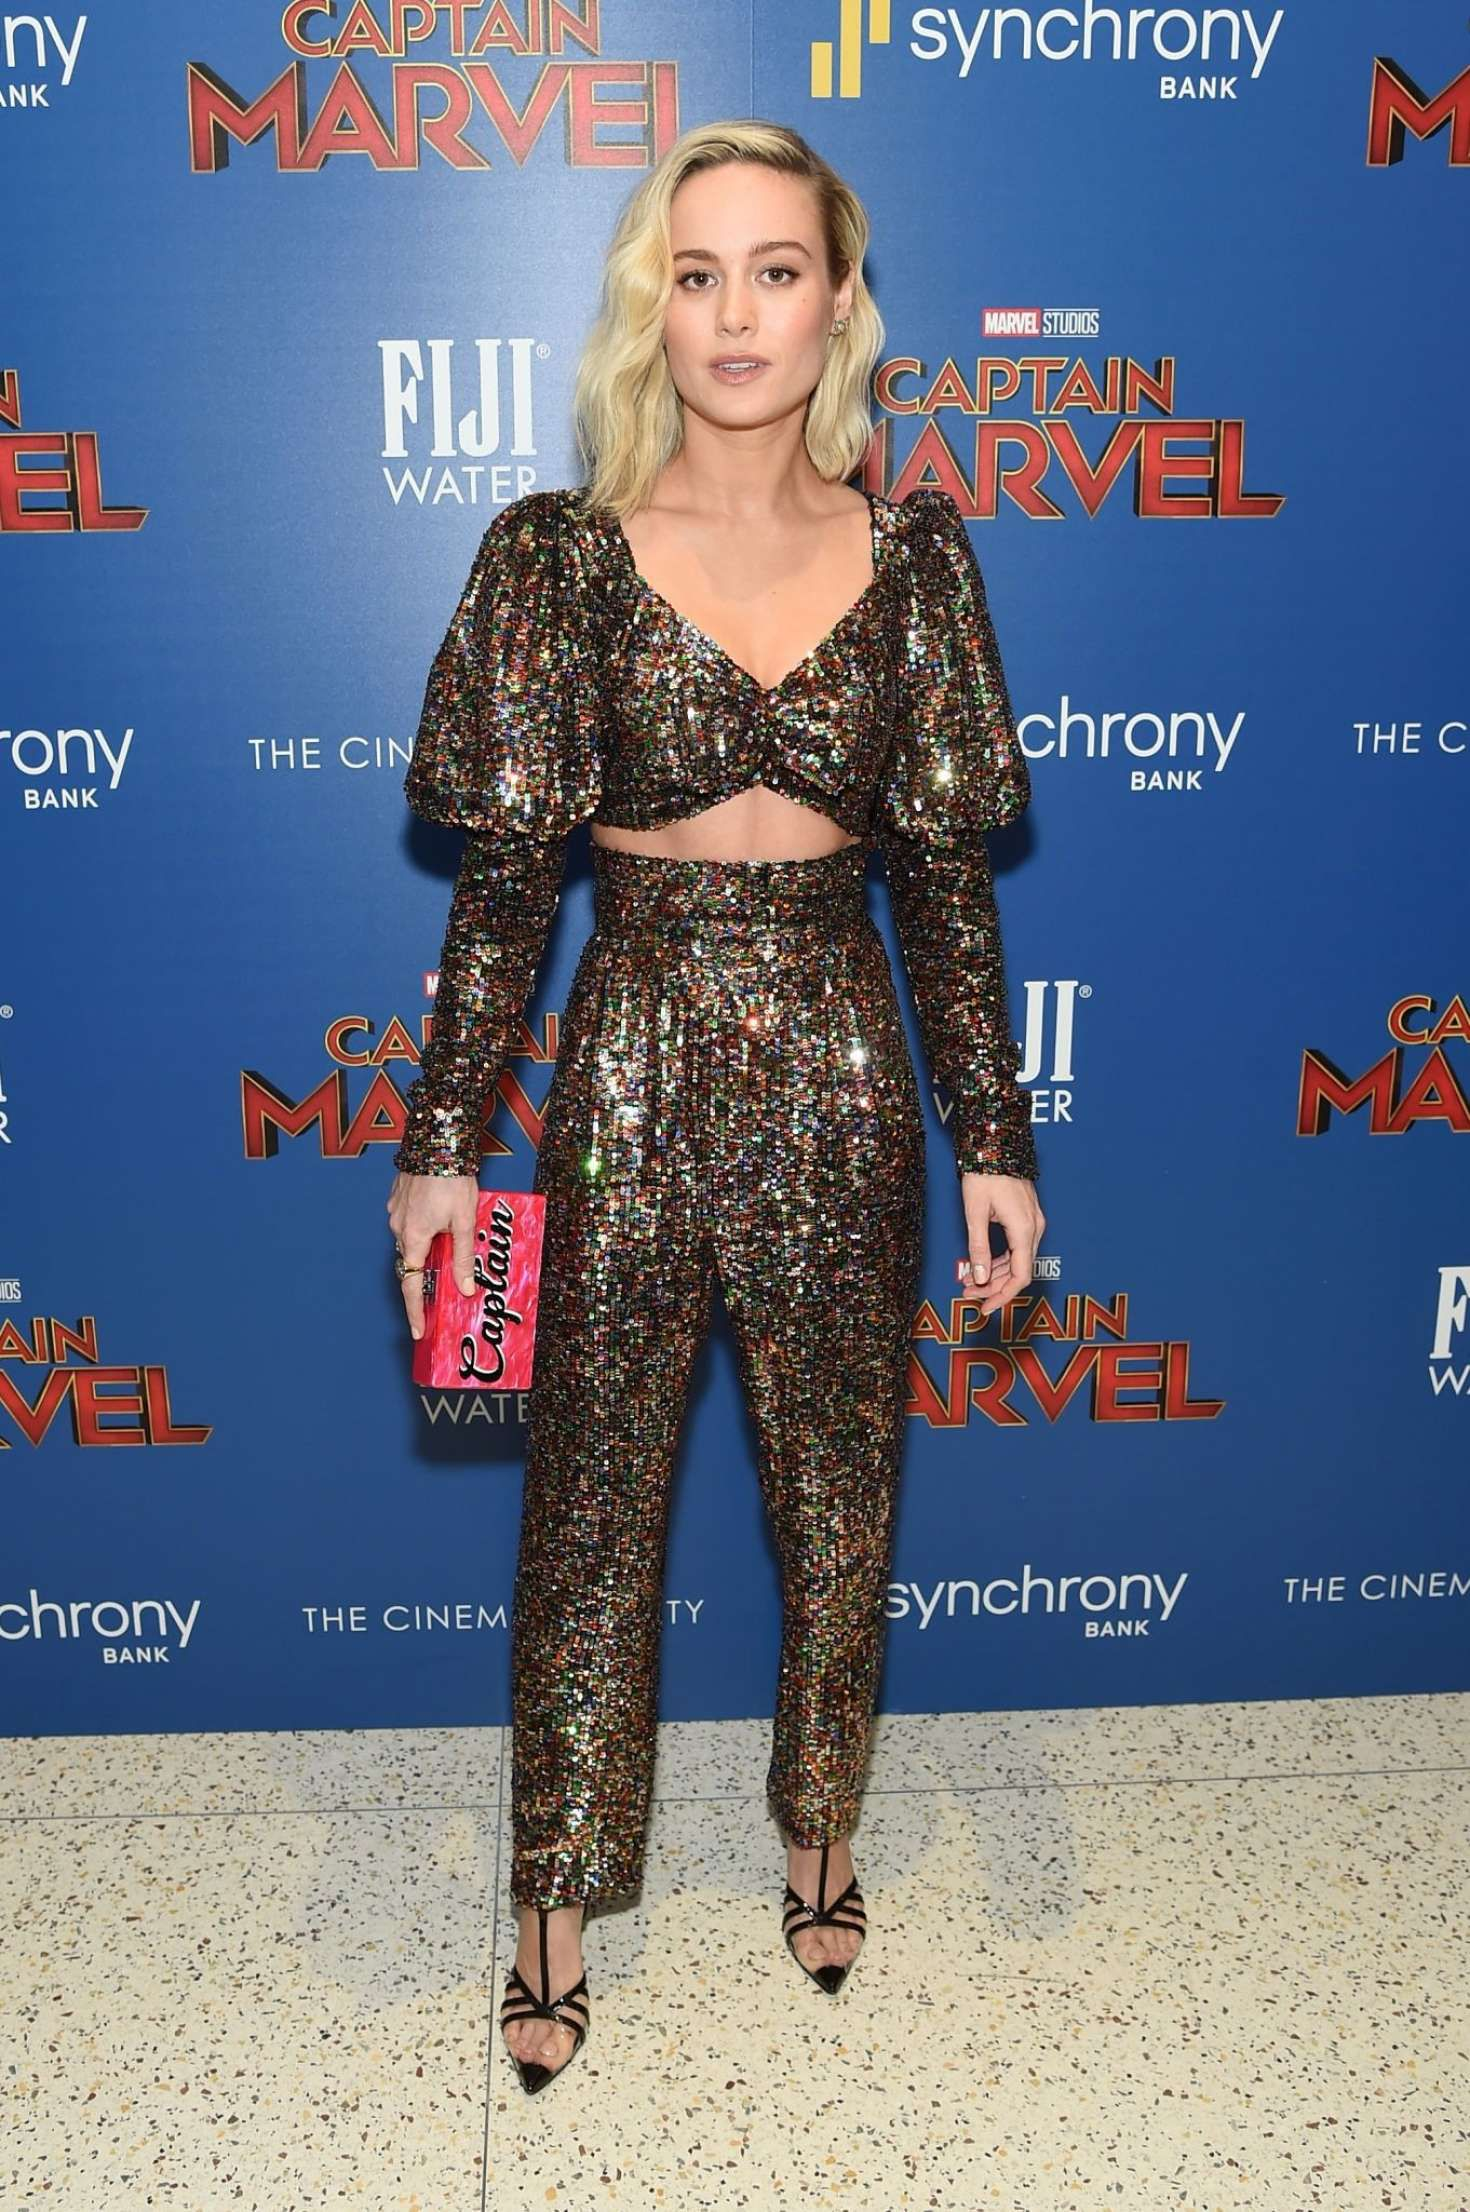 Brie Larson in new green suit at the 'Captain Marvel' Premiere, 2019